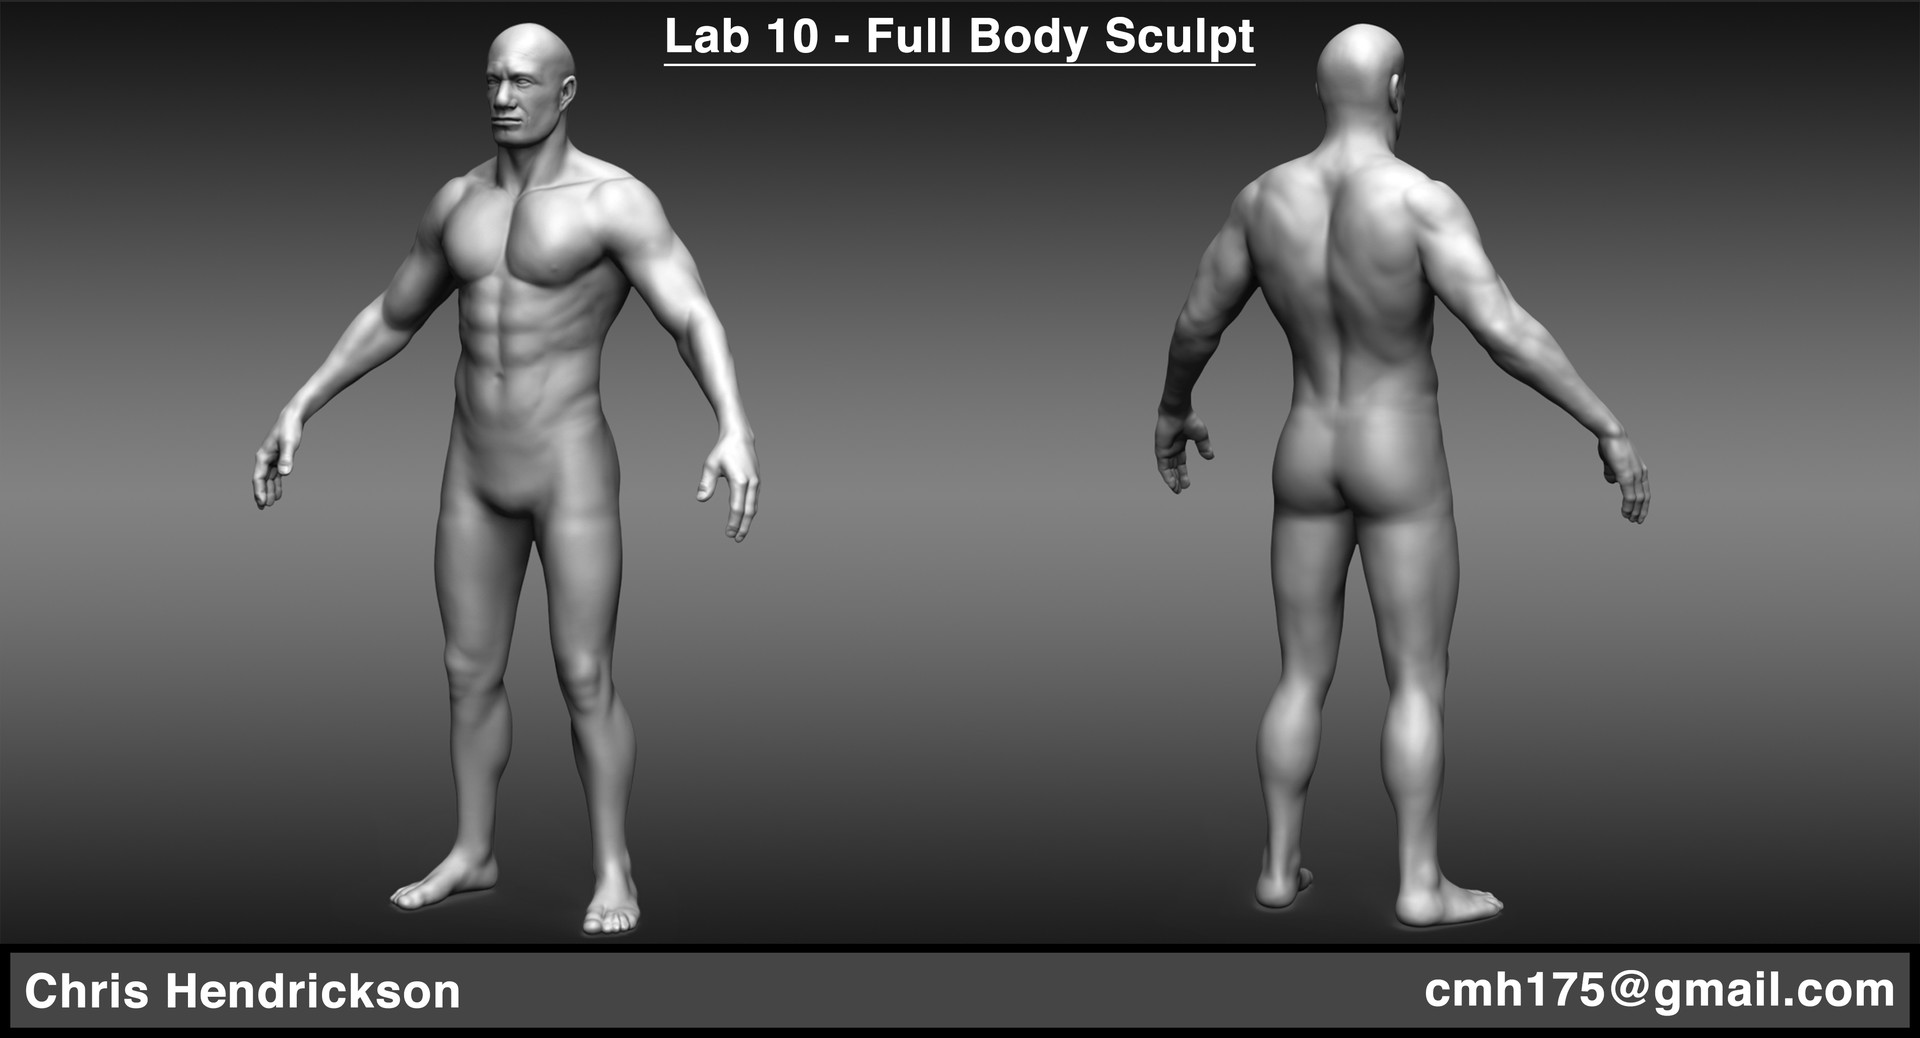 Game Character Competencies and Anatomy Studies.